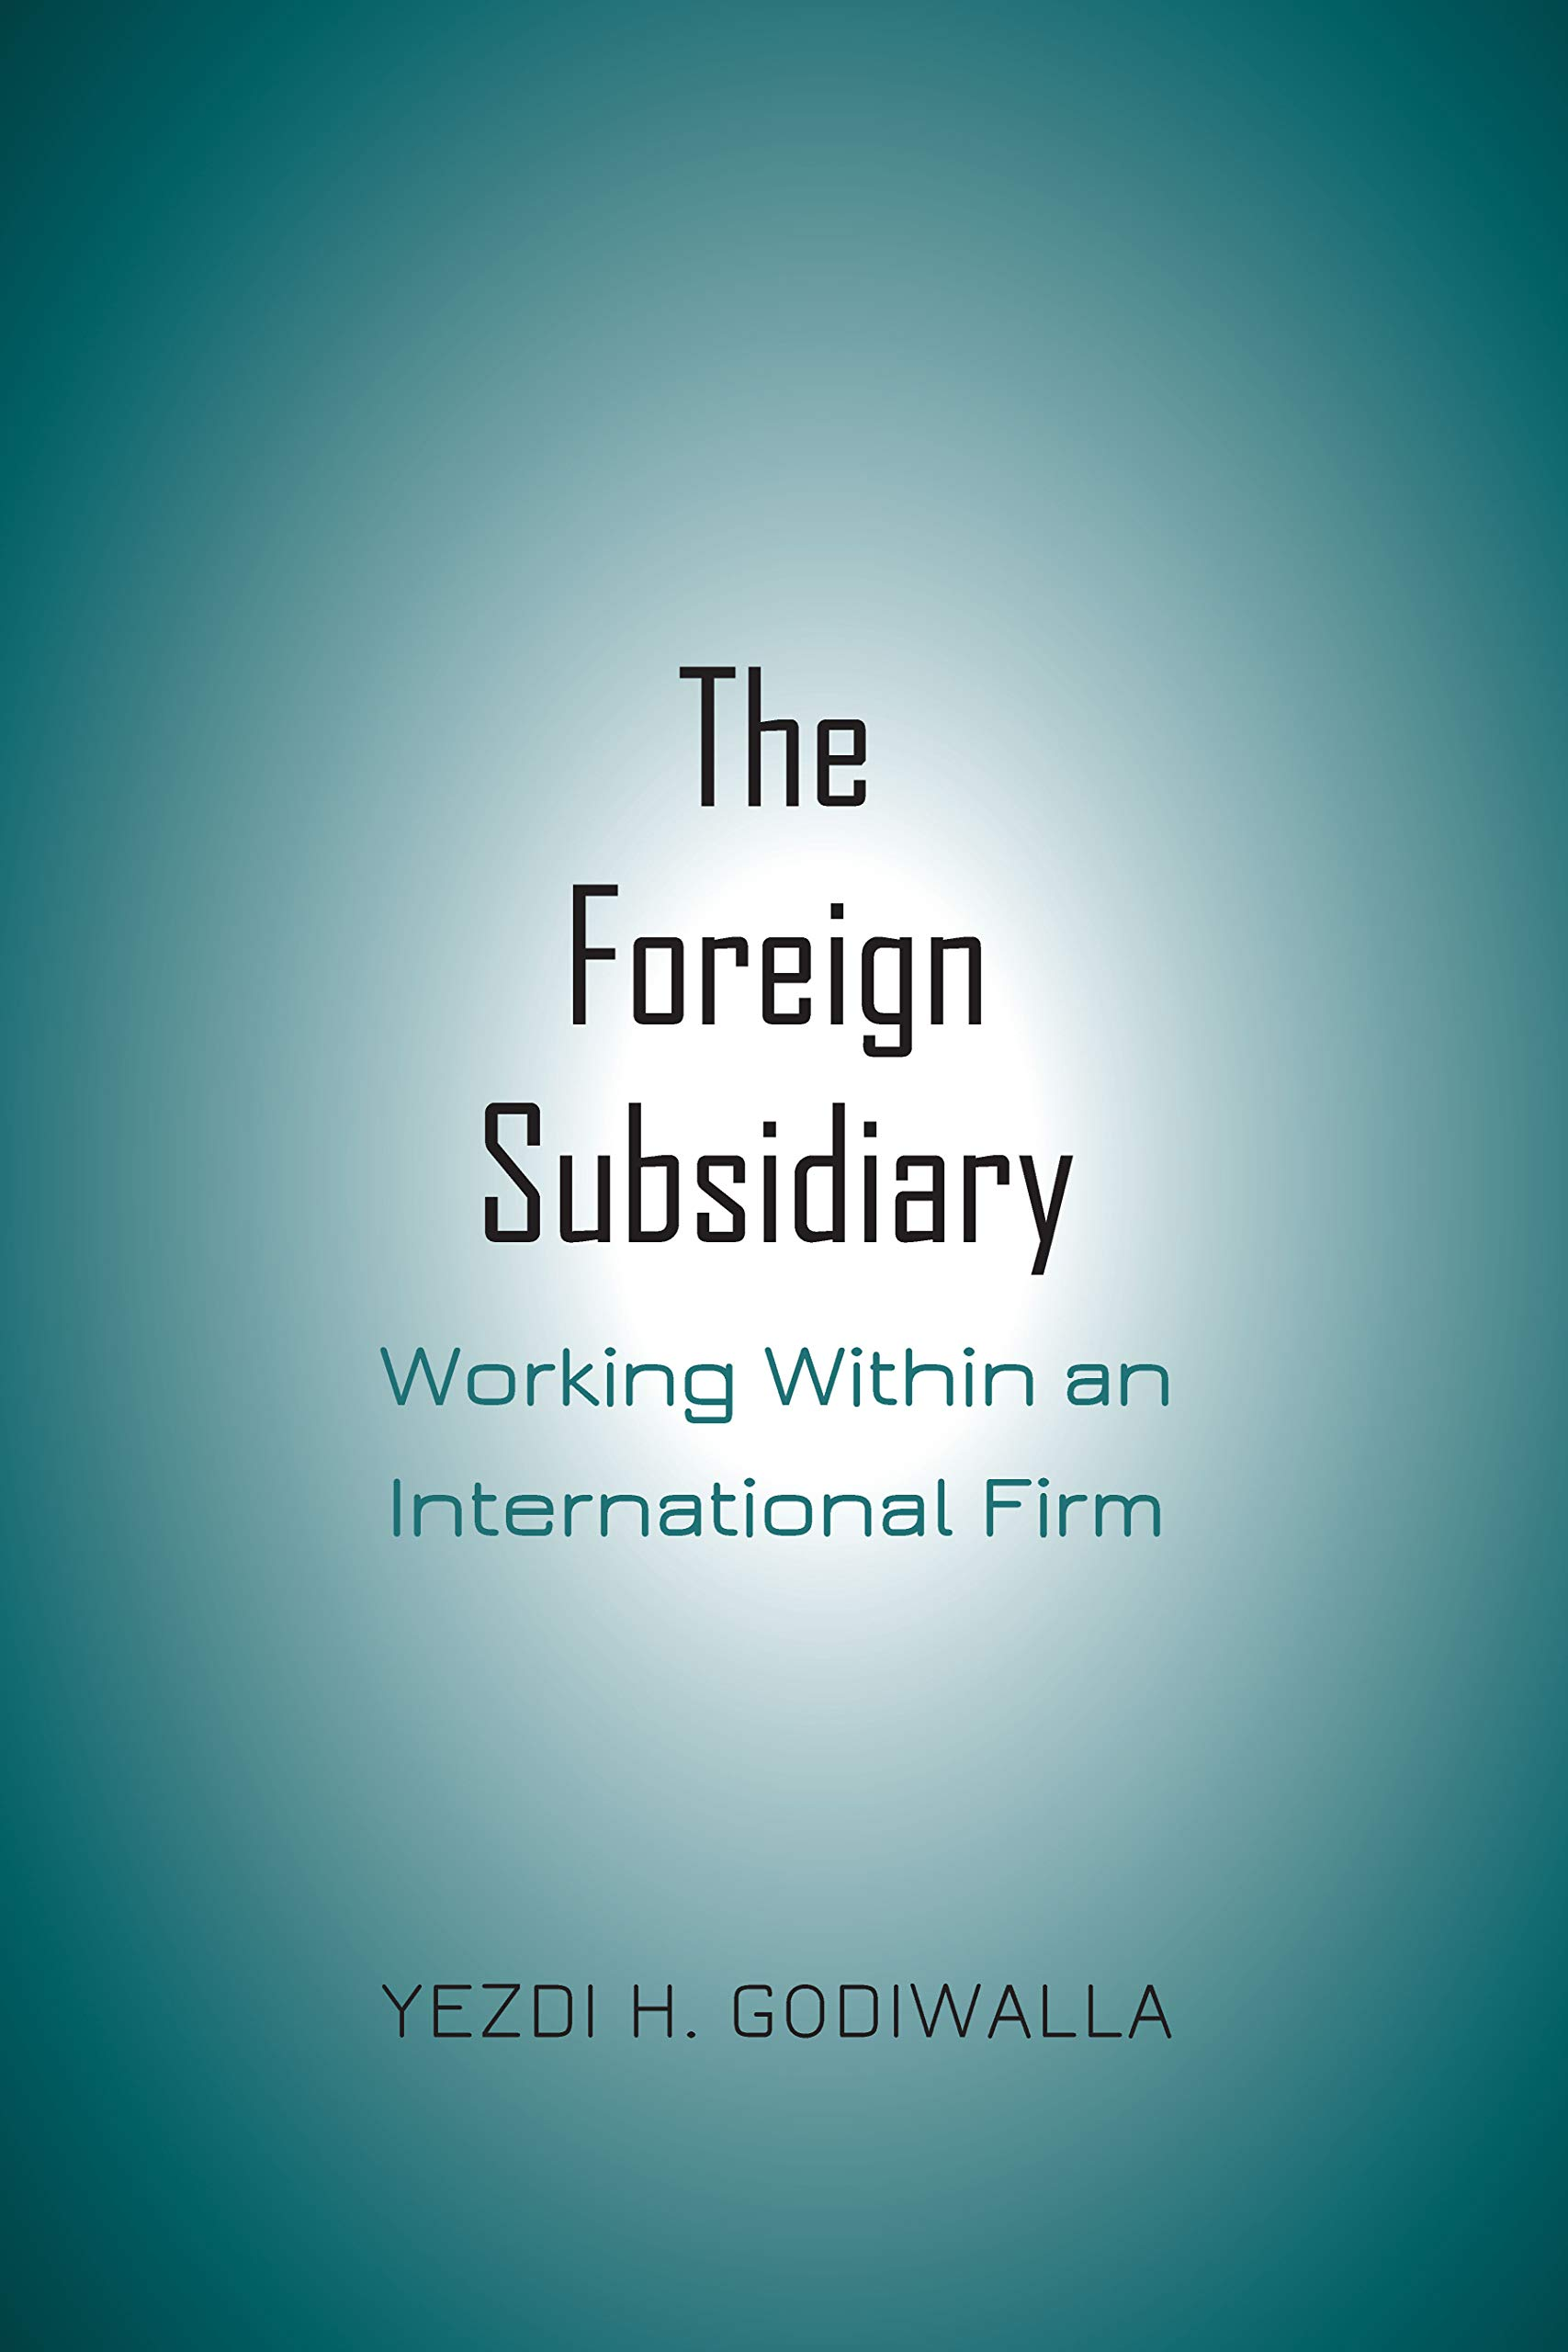 The Foreign Subsidiary: Working Within an International Firm